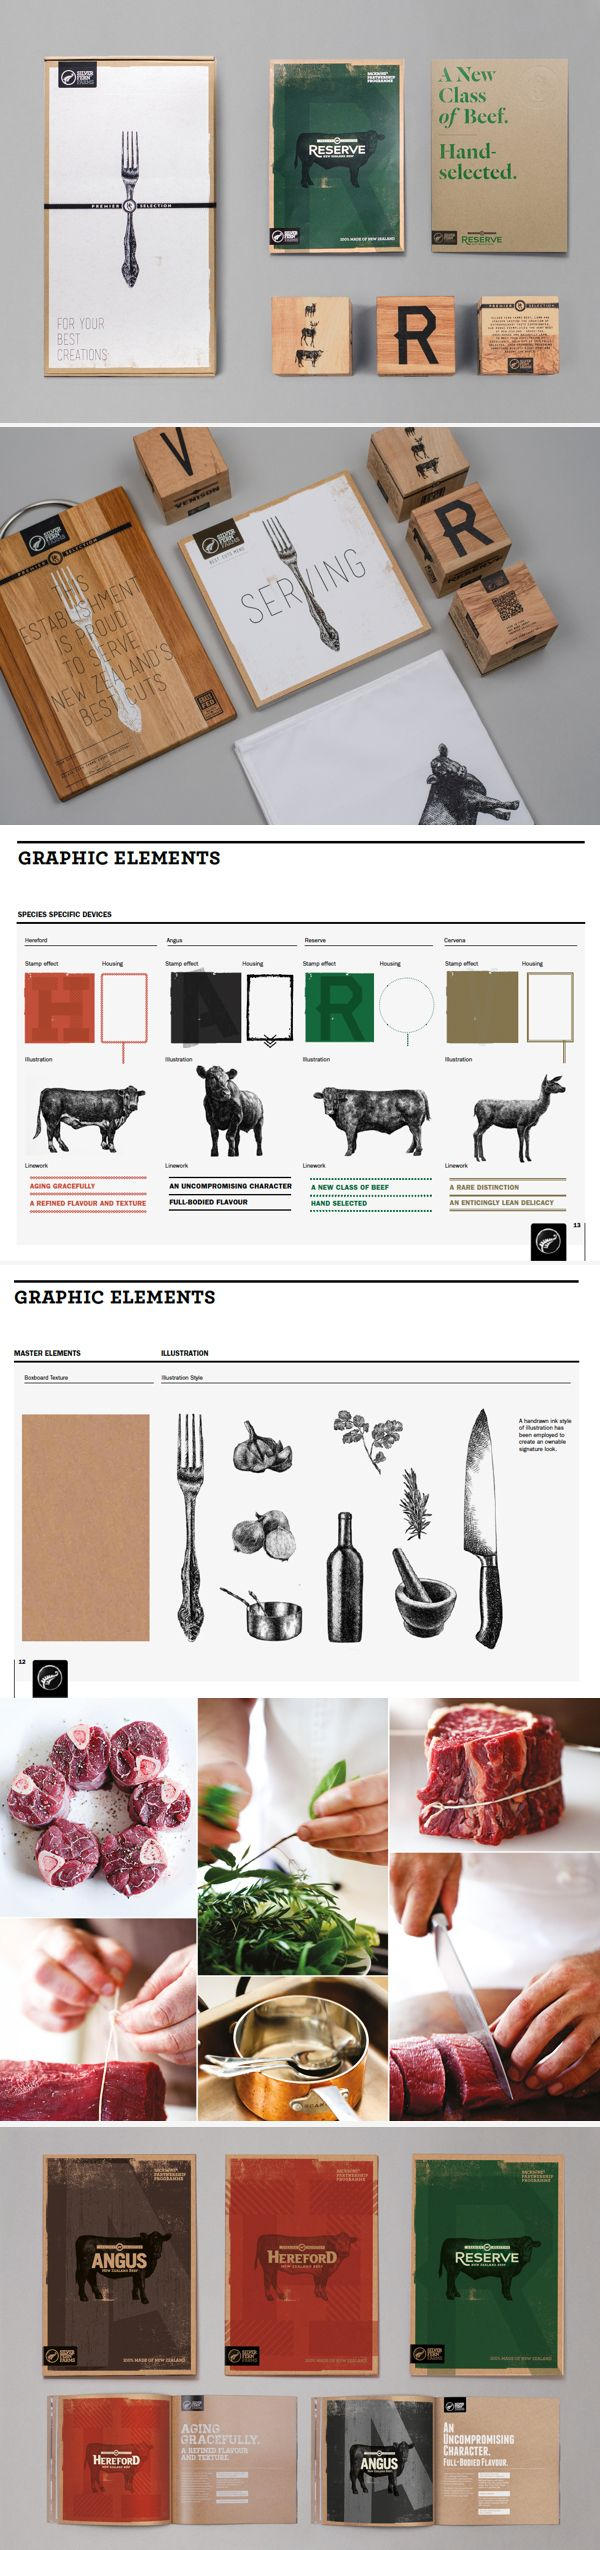 Silver Fern Farms I'm so hungry I could eat a cow #identity #packaging #branding PD